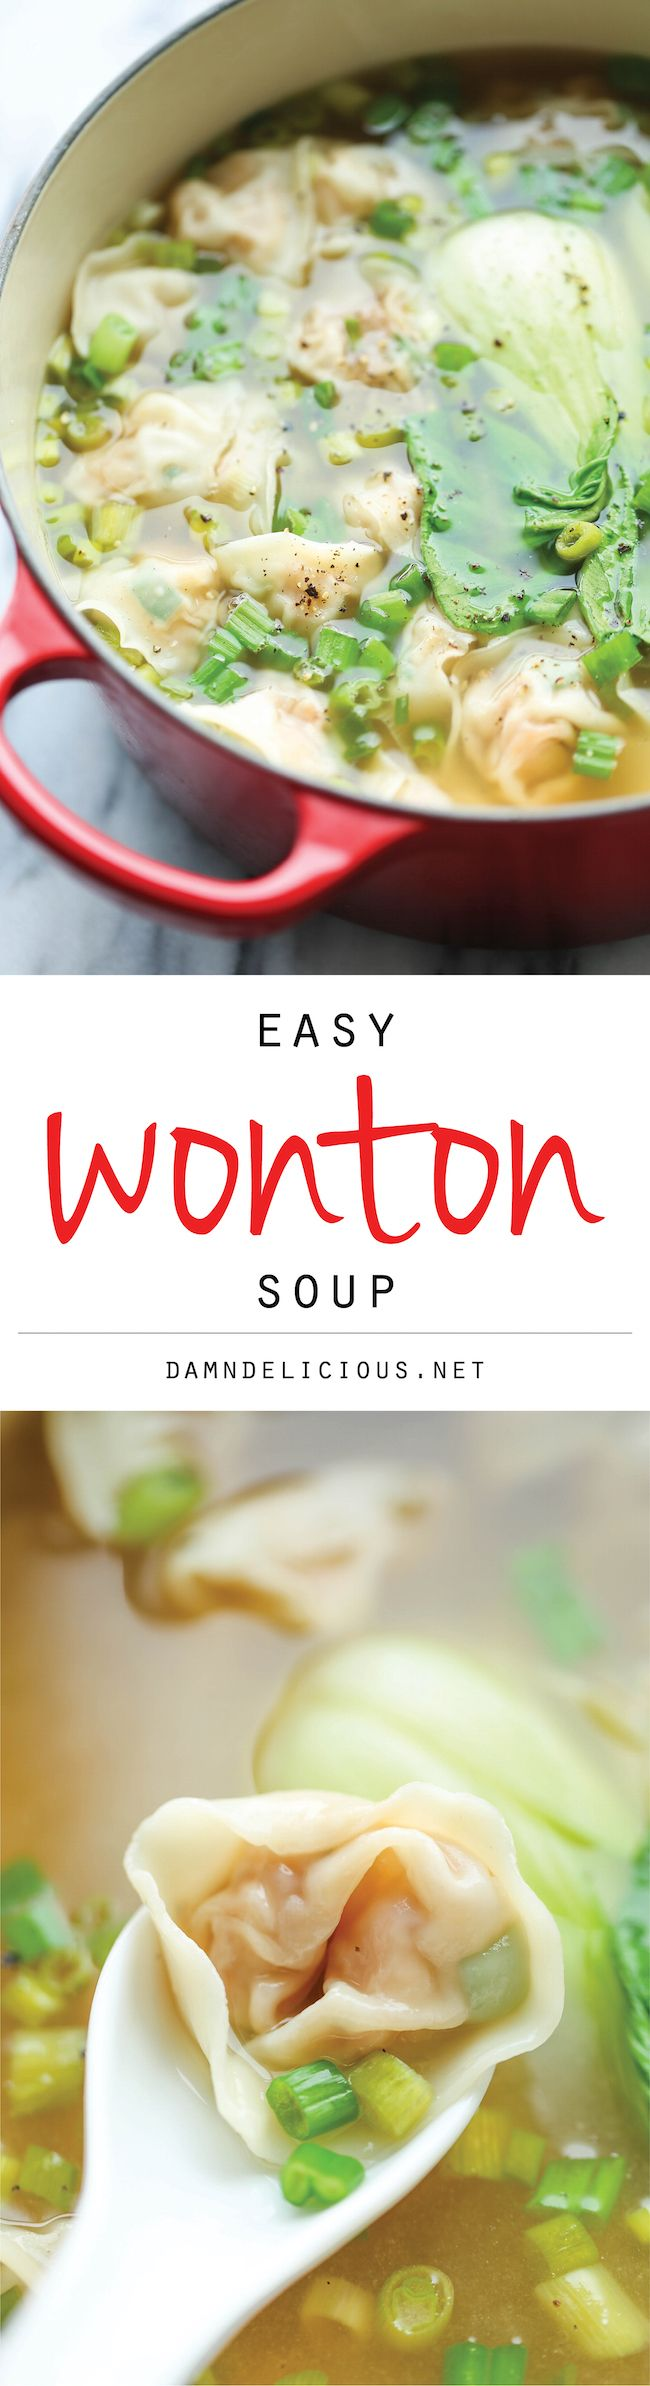 ..Wonton Soup - A super easy, light and comforting wonton soup that you can make right at home - and it tastes 1000x better than ordering out!